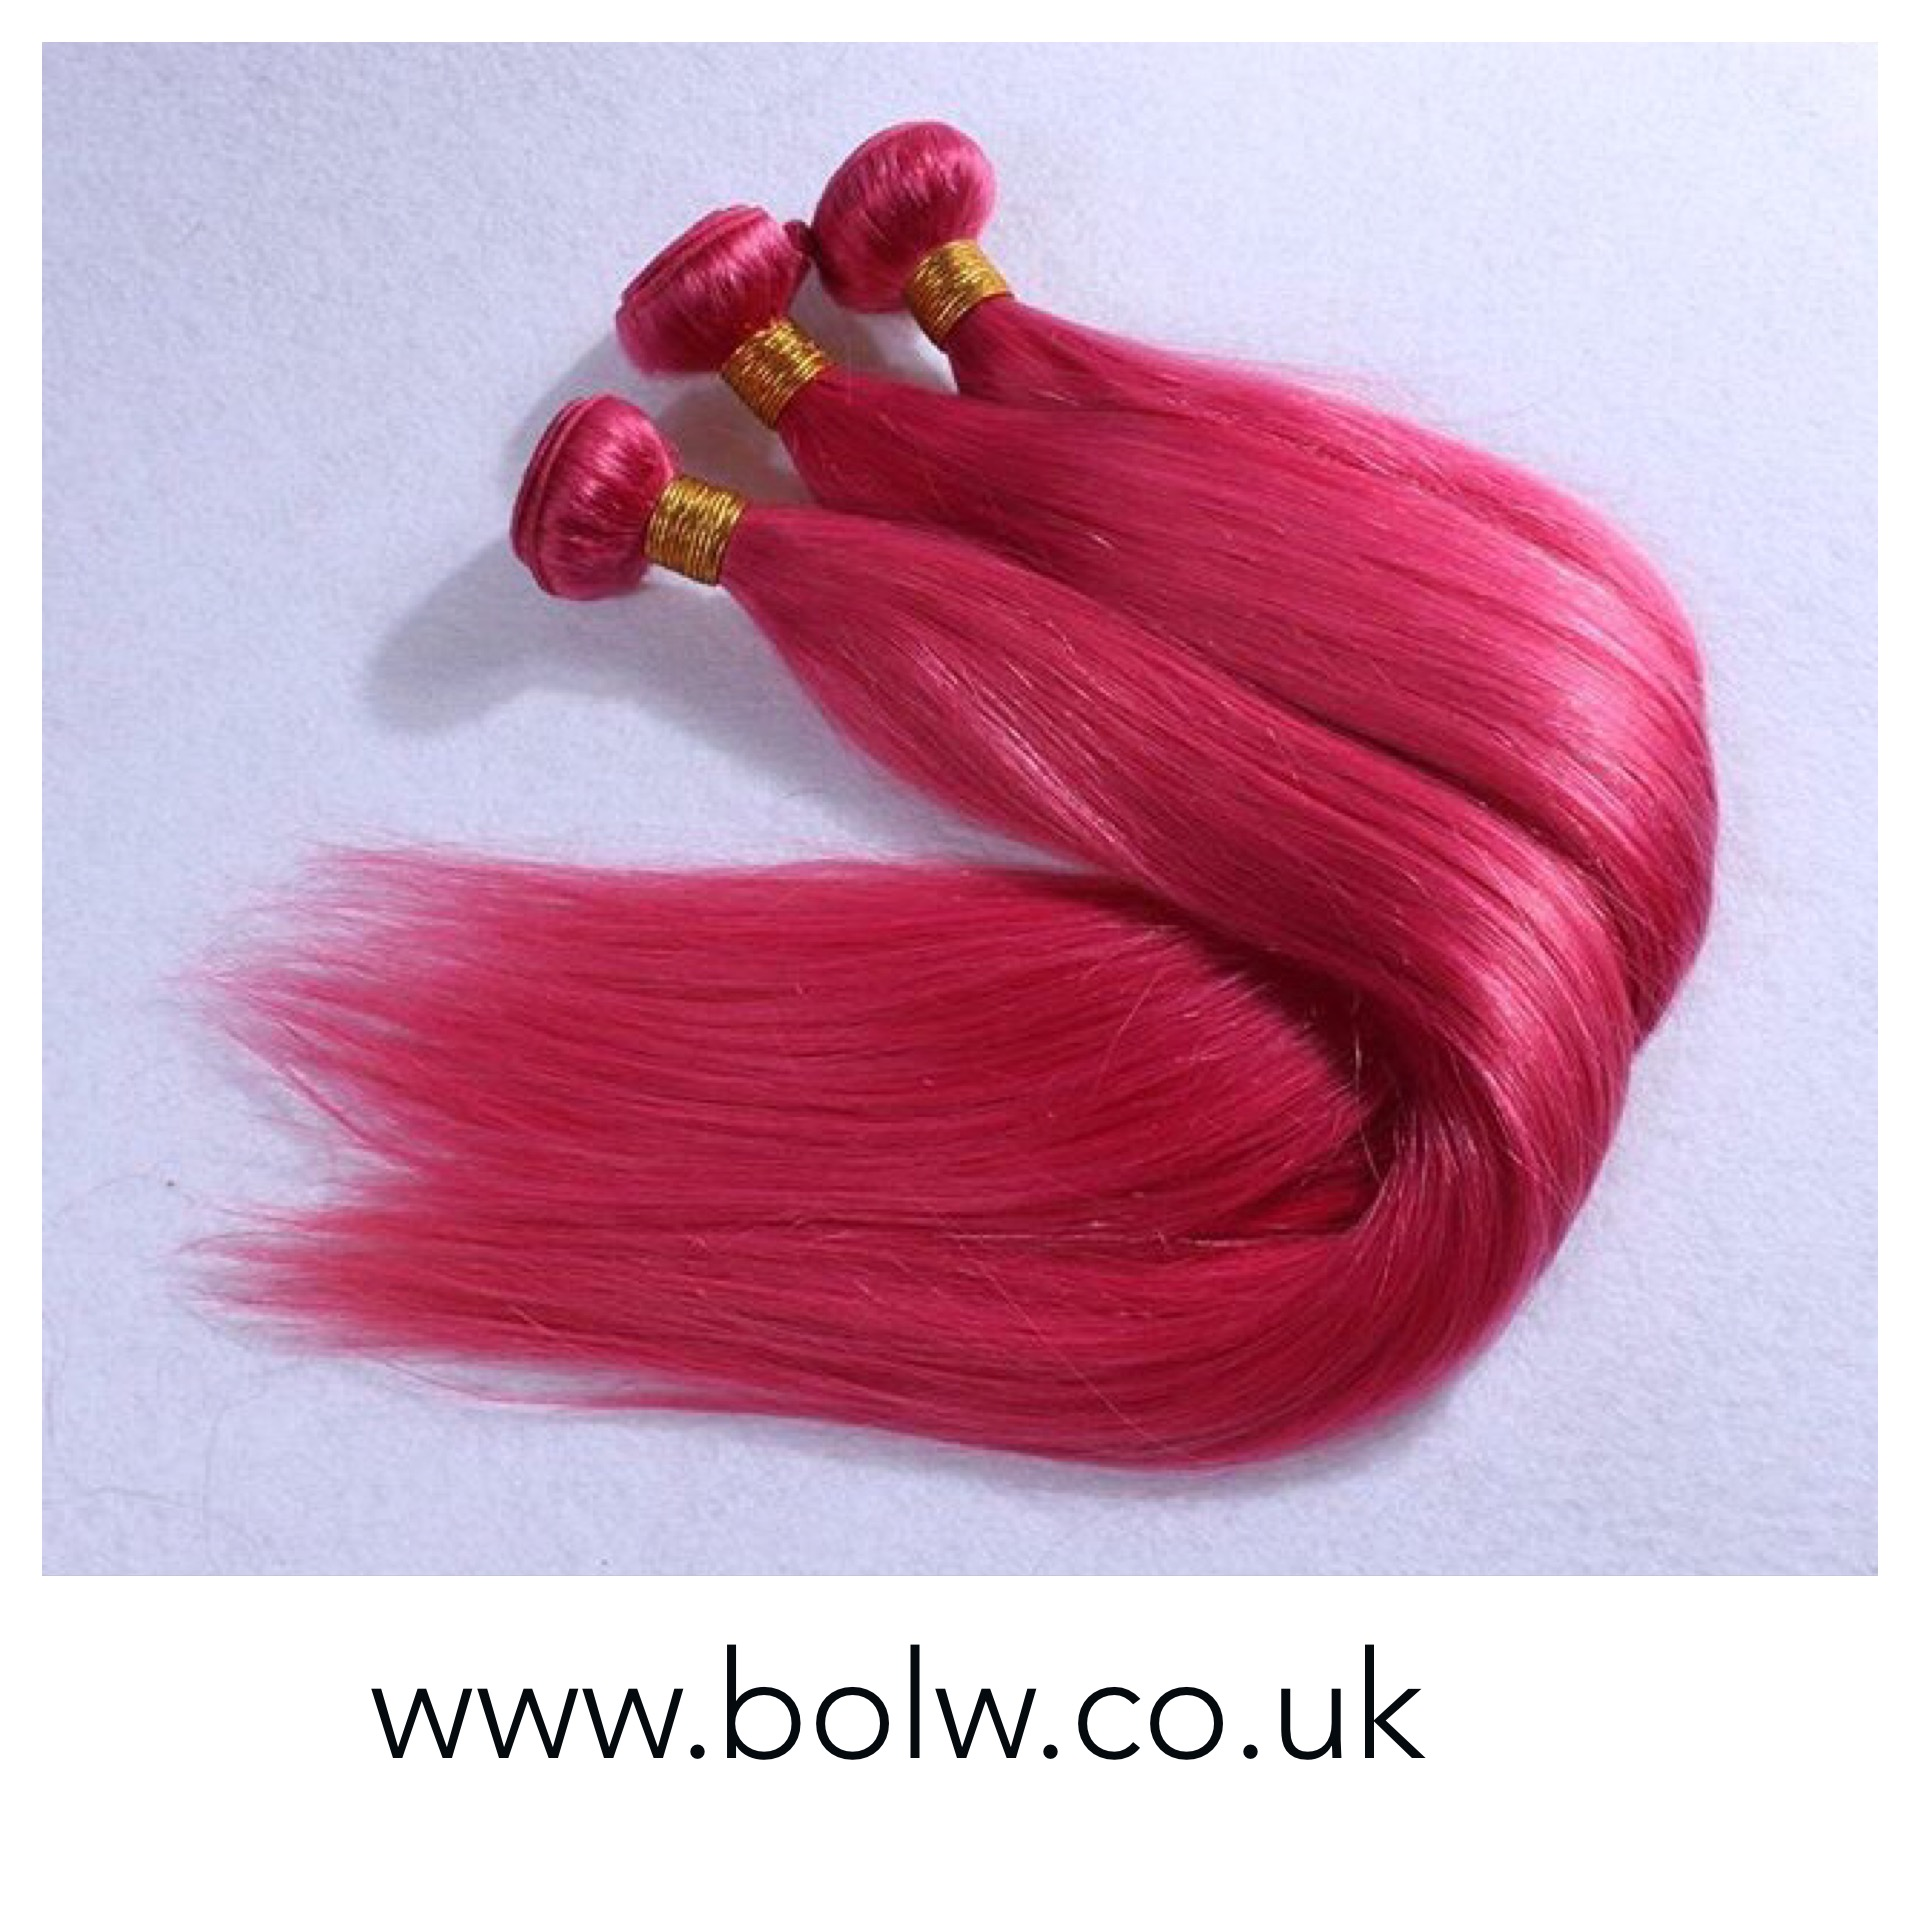 Bolw Virgin Hair Colour Extensions Blondes Originals Lace Wigs